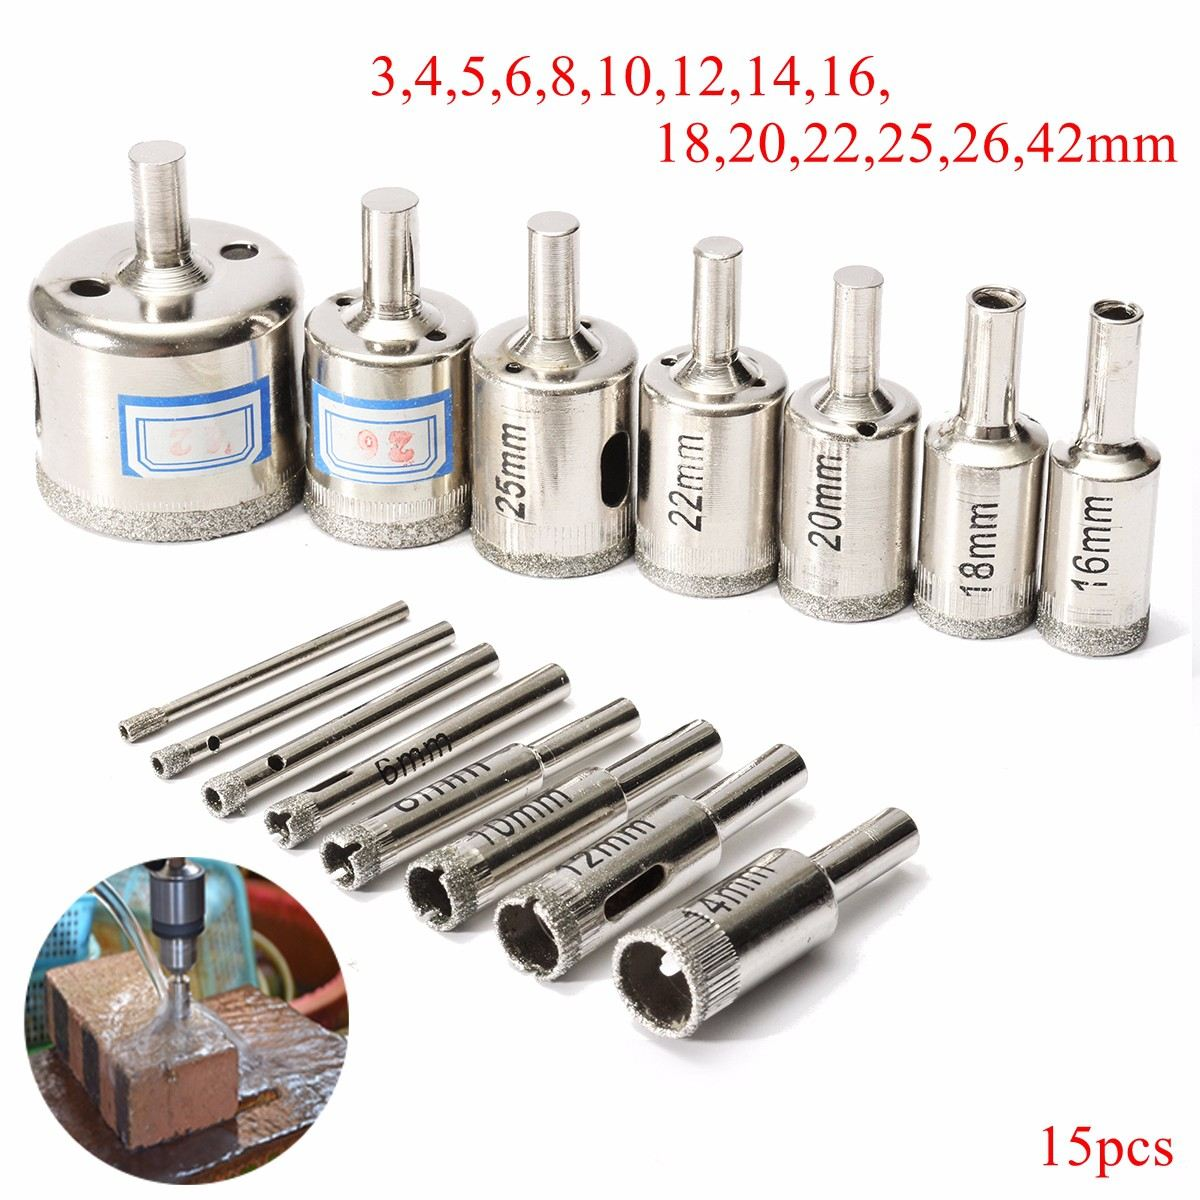 15pcs/set Marble Drill Bits 3mm-42mm Diamond Hole Saw Cutter Tool For Marble Tile Ceramic Glass Hot Sale